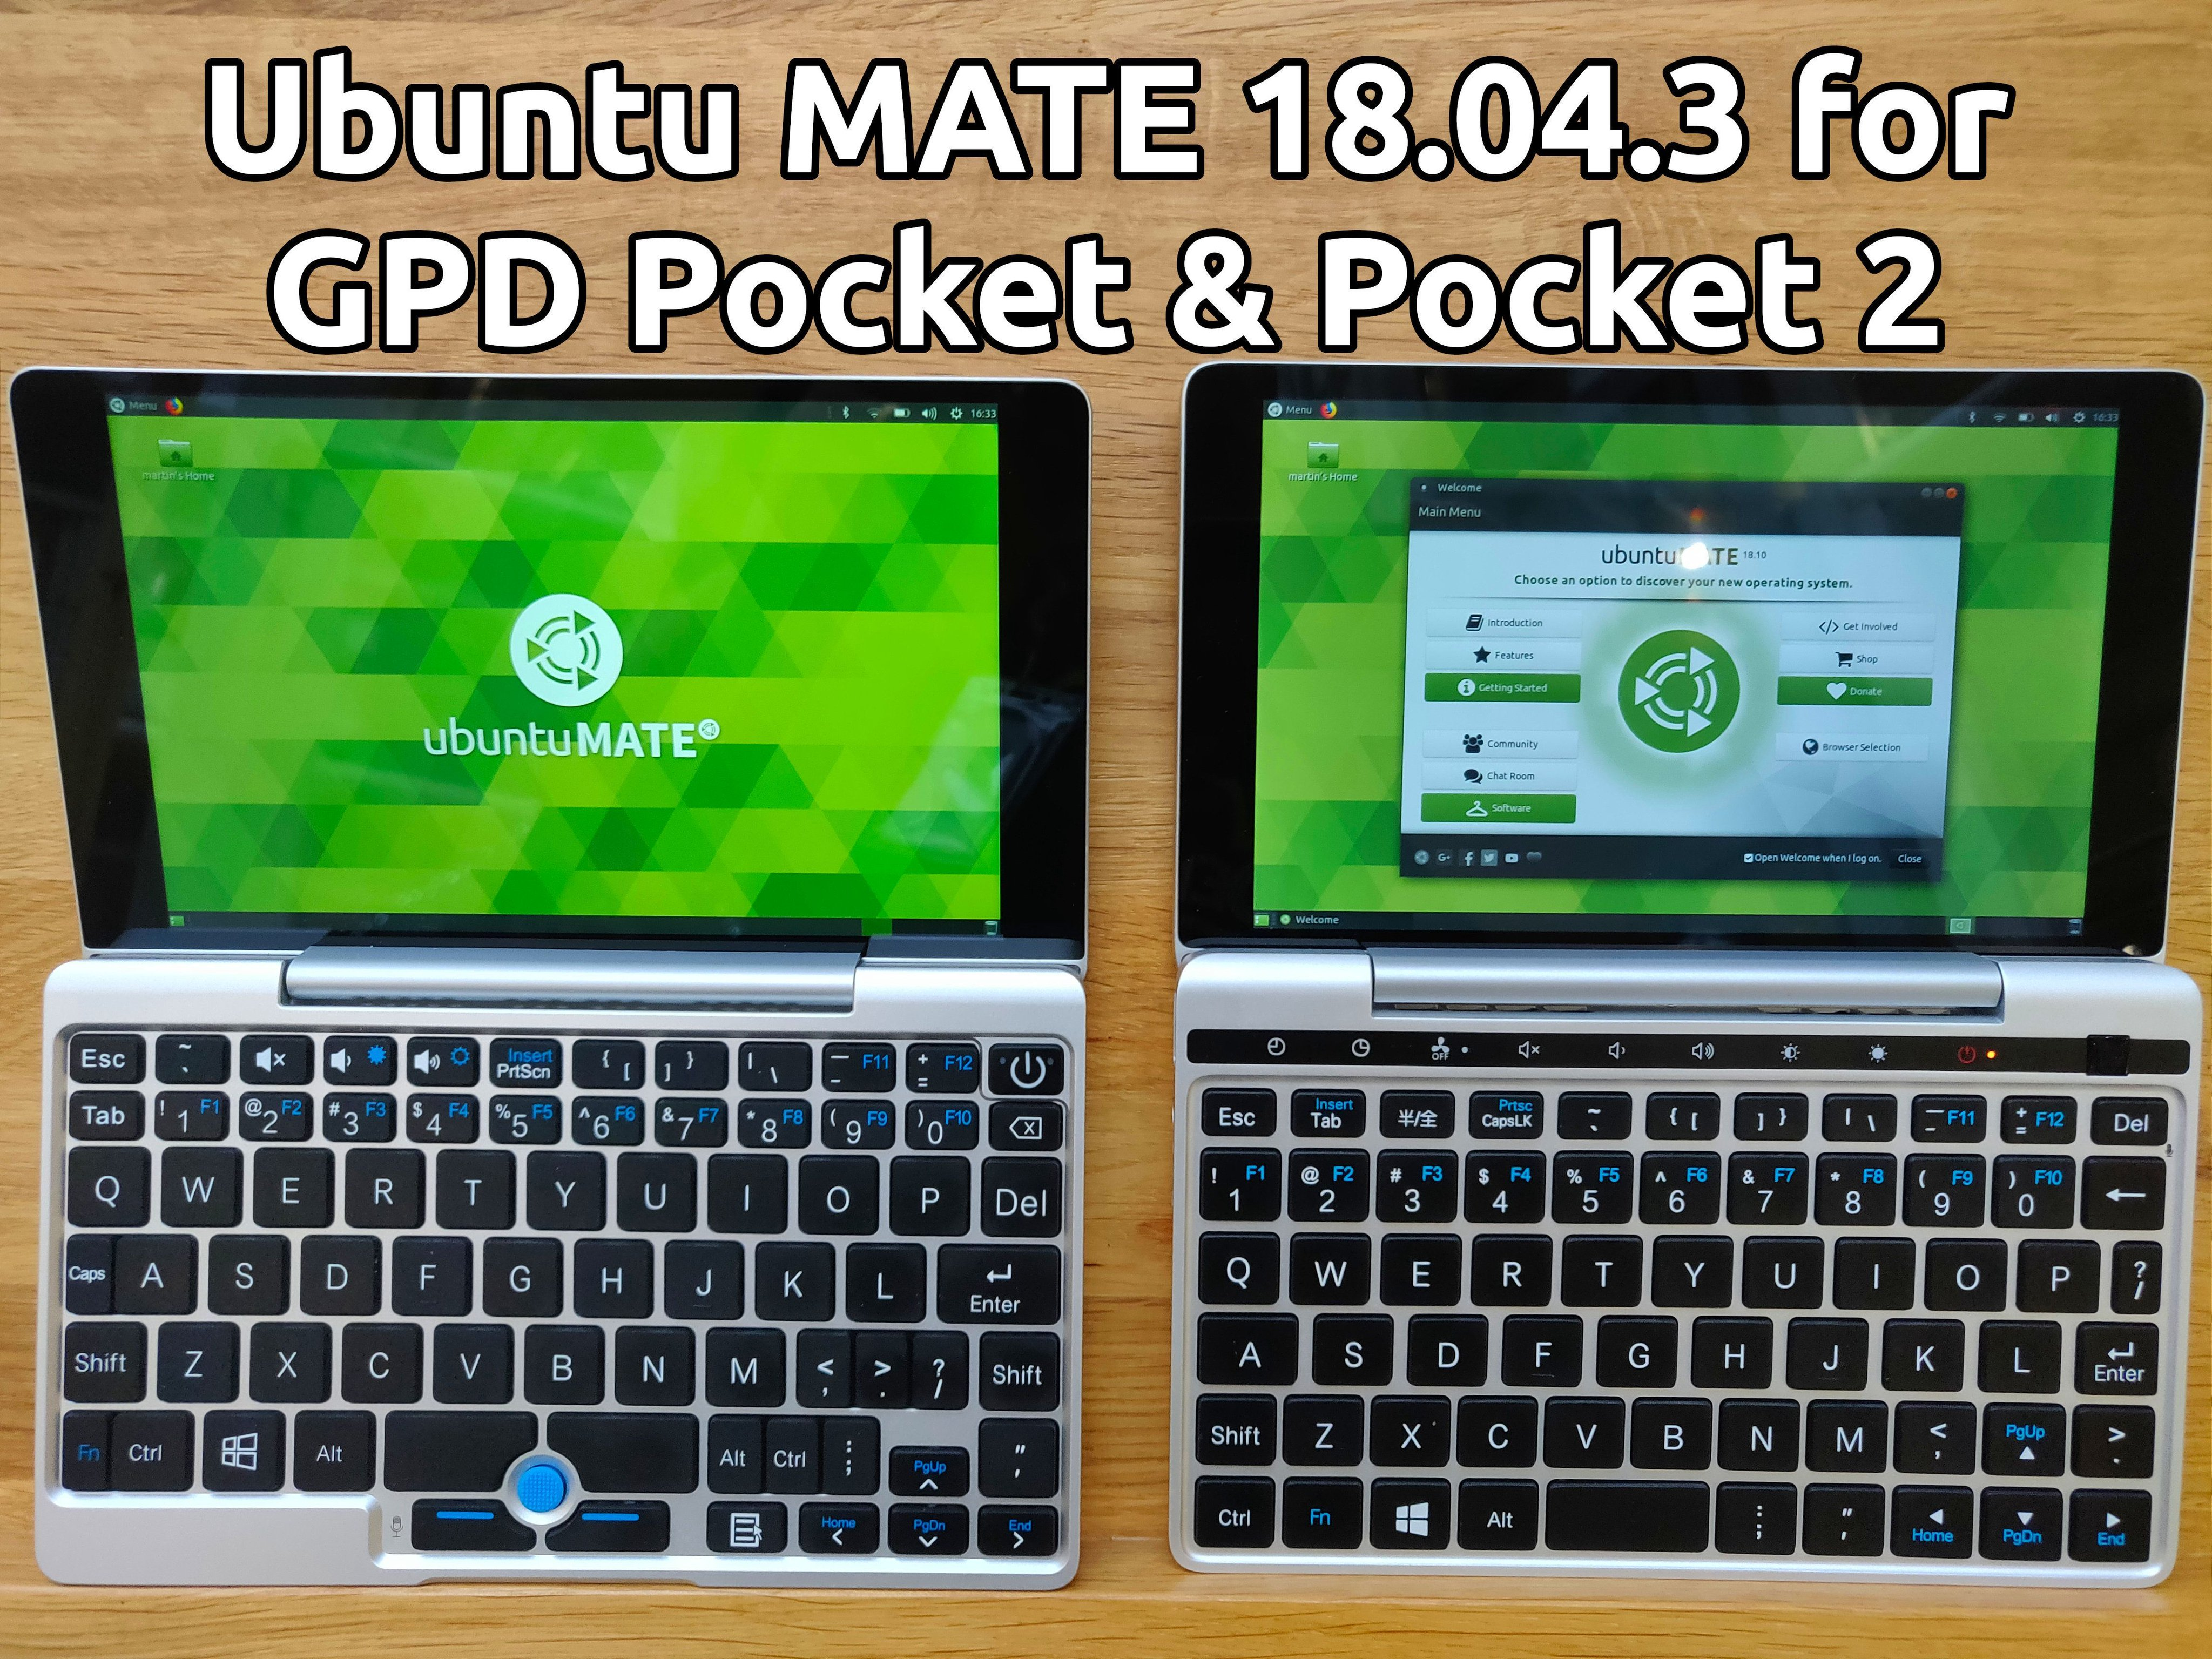 ubuntu mate gpd pocket